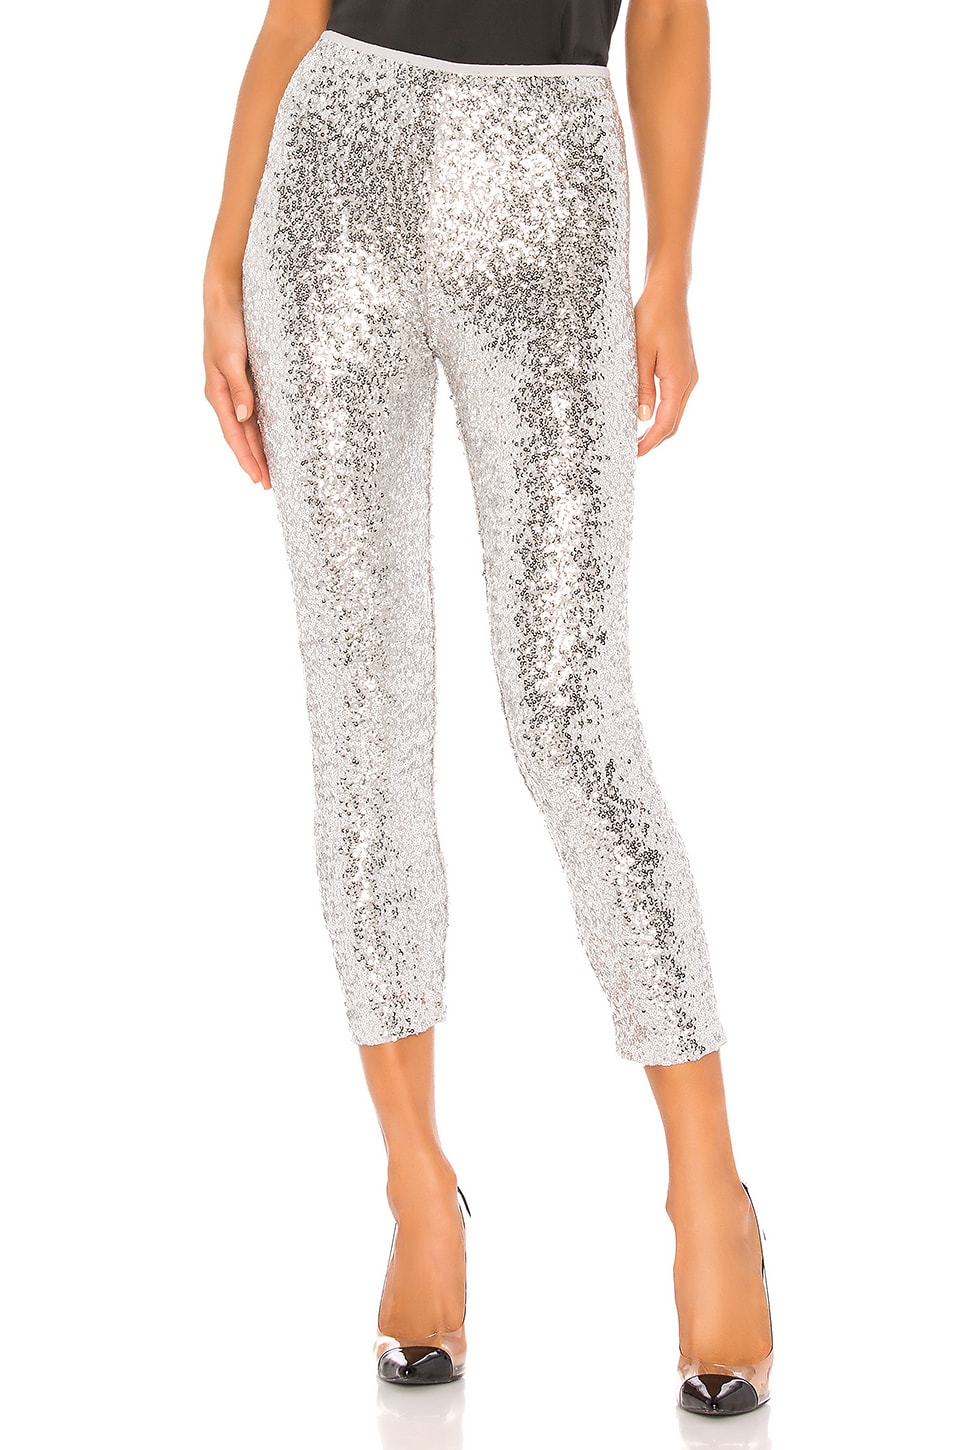 Norma Kamali Pants Overlapping Sequin Legging